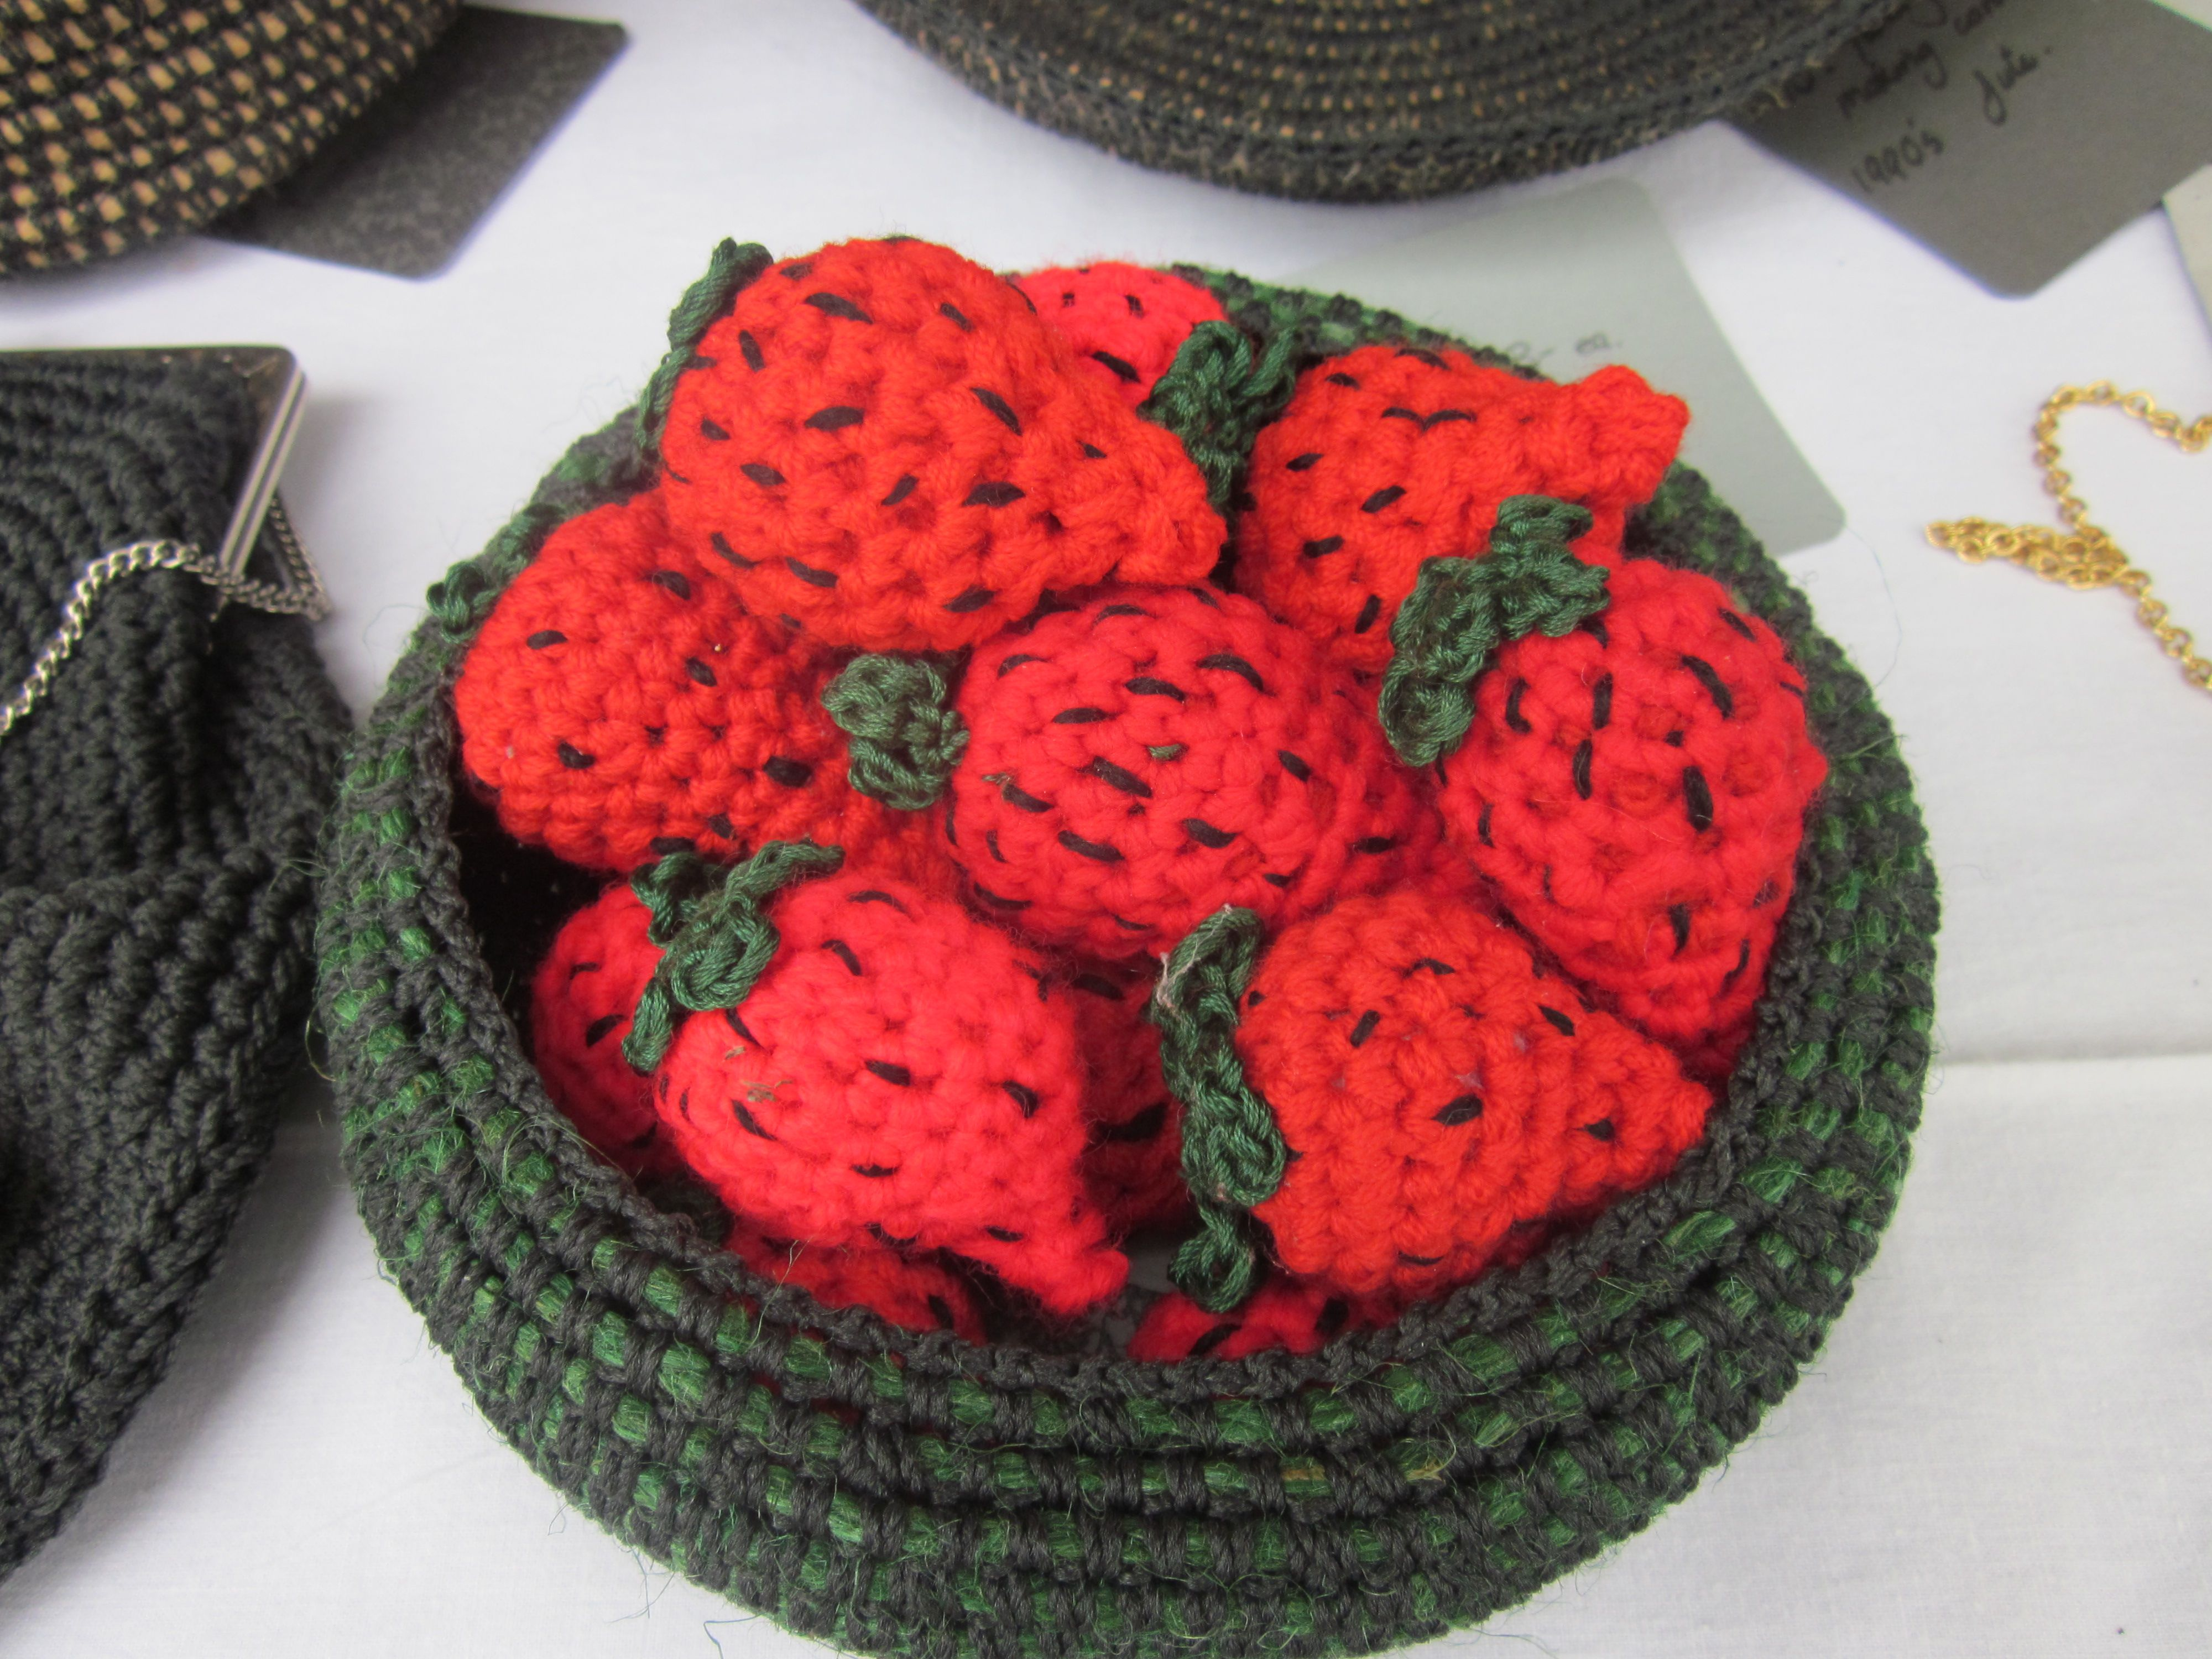 Salad Days Prospect Art Gallery Exhibition 2013 Fishing net cord and jute bowl with Crocheted strawberries